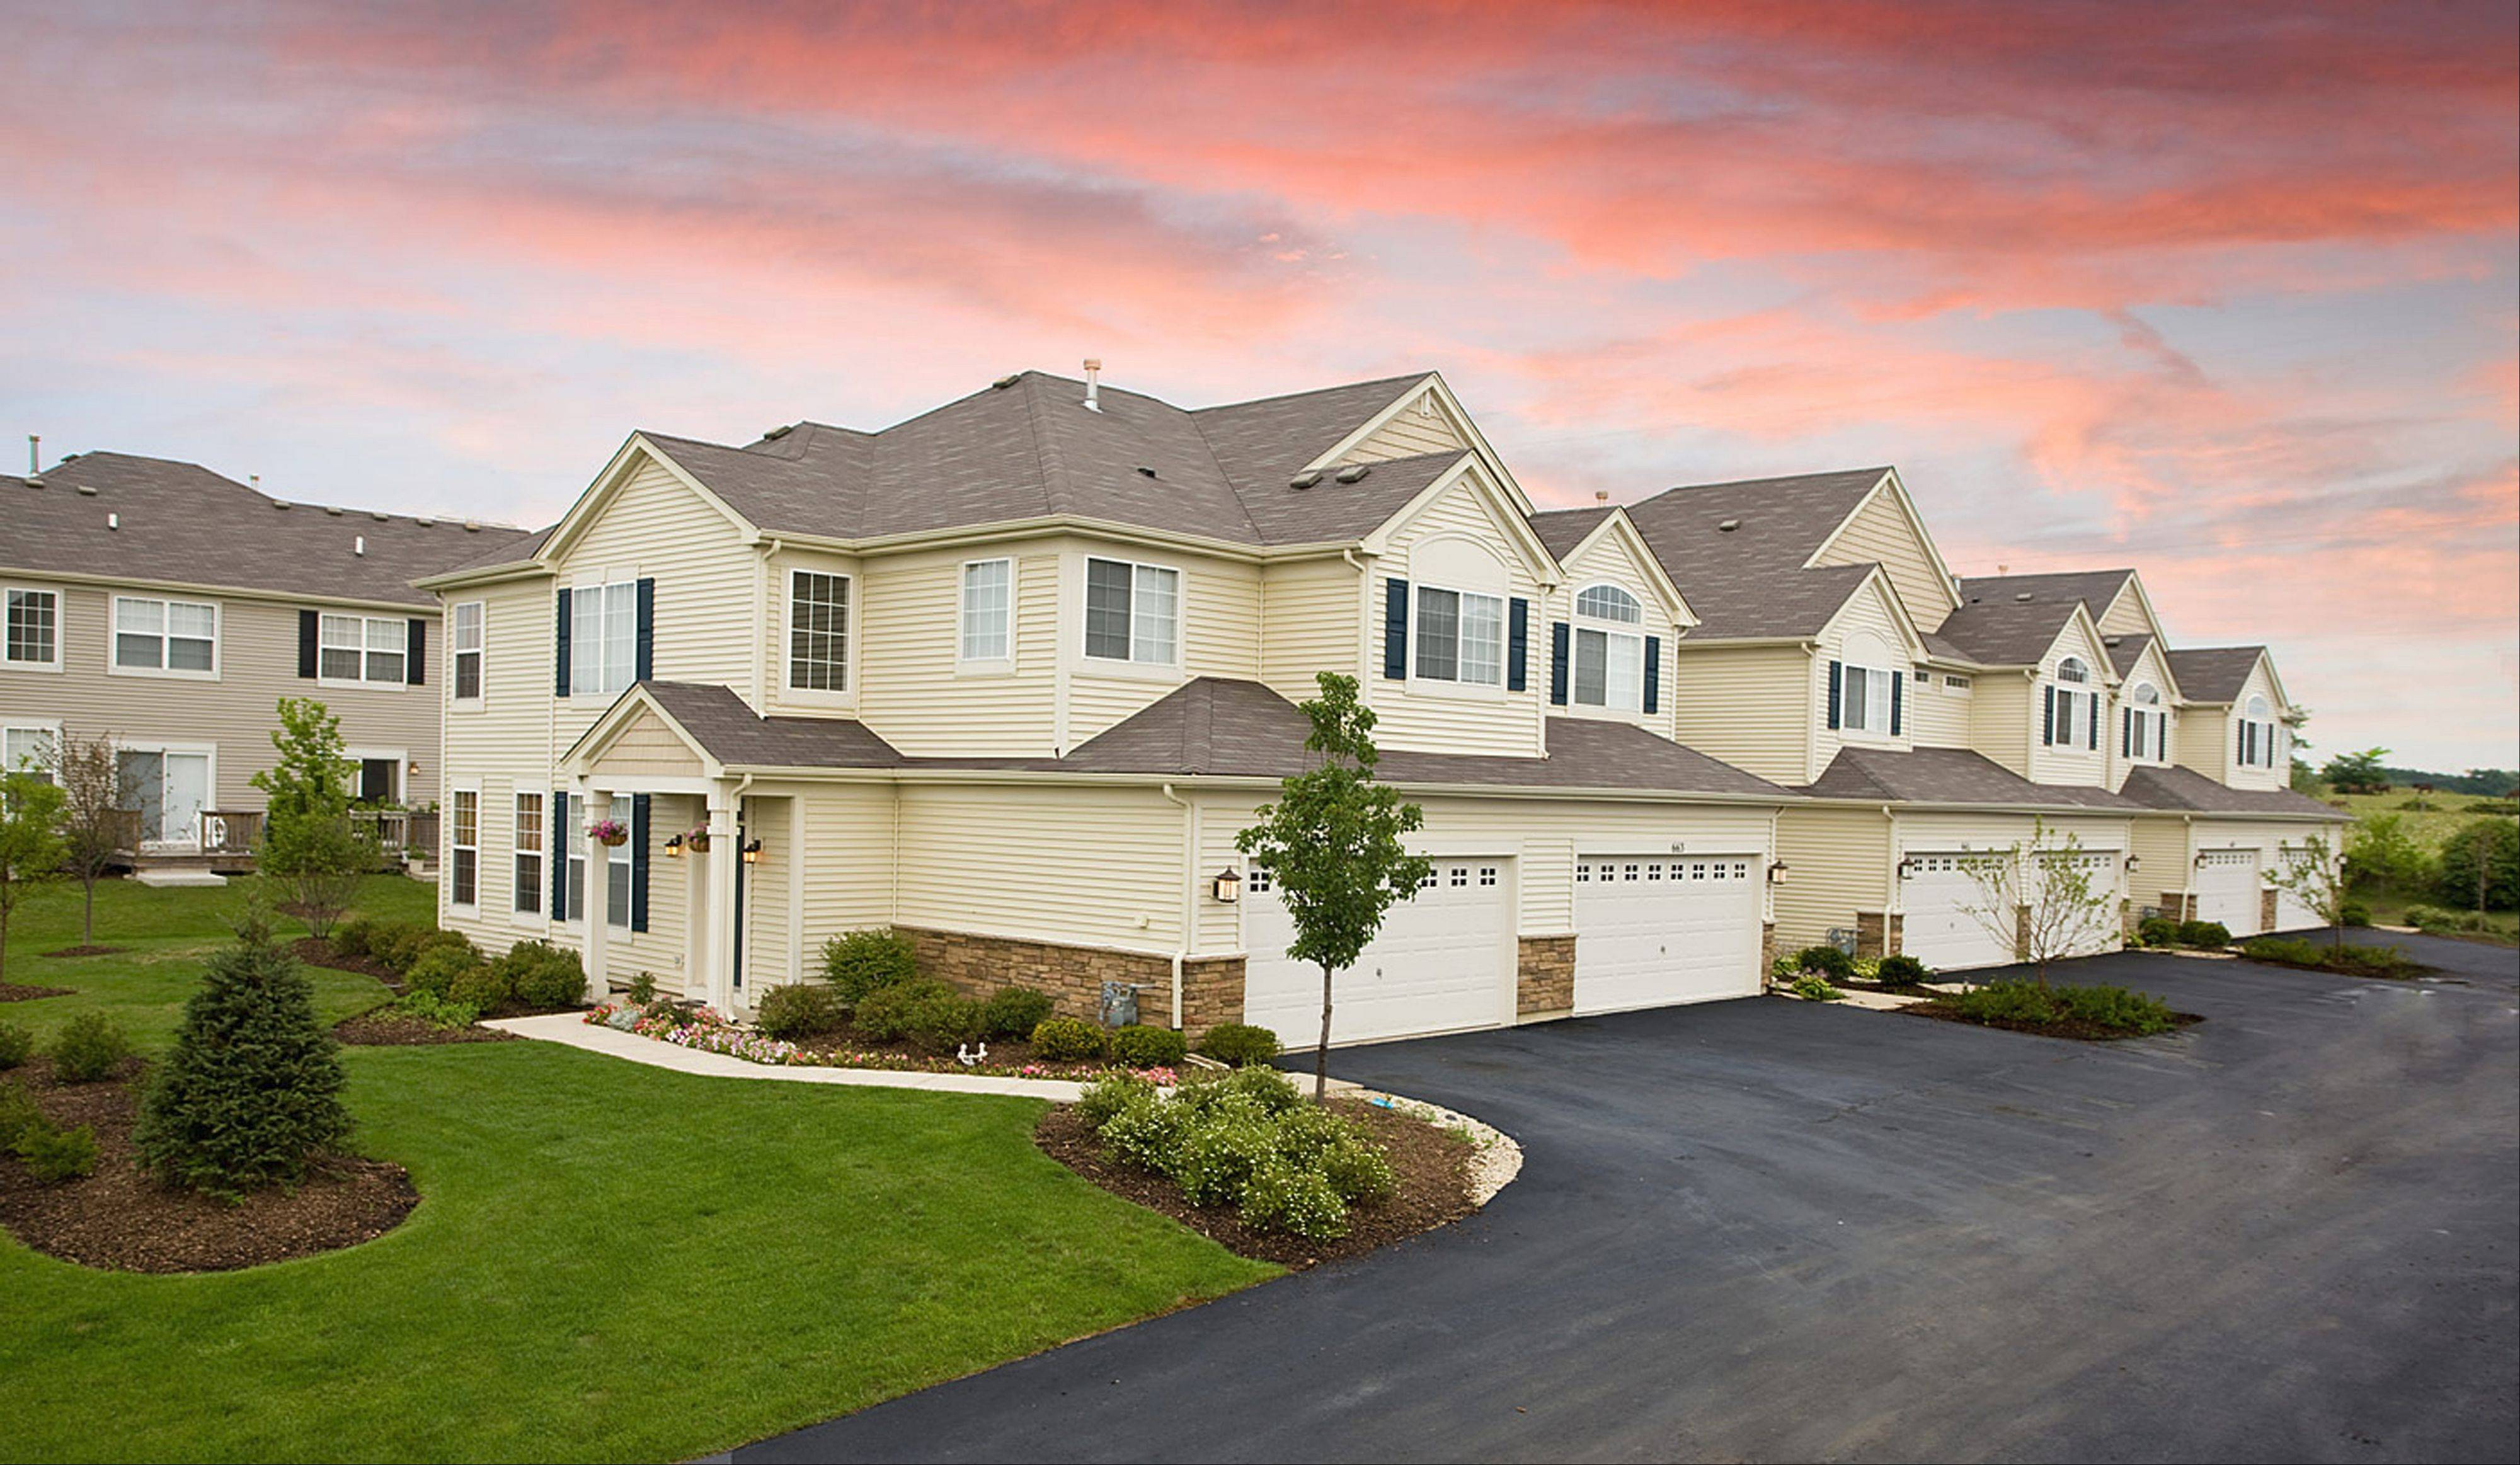 In addition to single-family houses, Ryland Homes also is constructing townhouse communities at Emerald Bay in Round Lake and Talamore in Huntley.